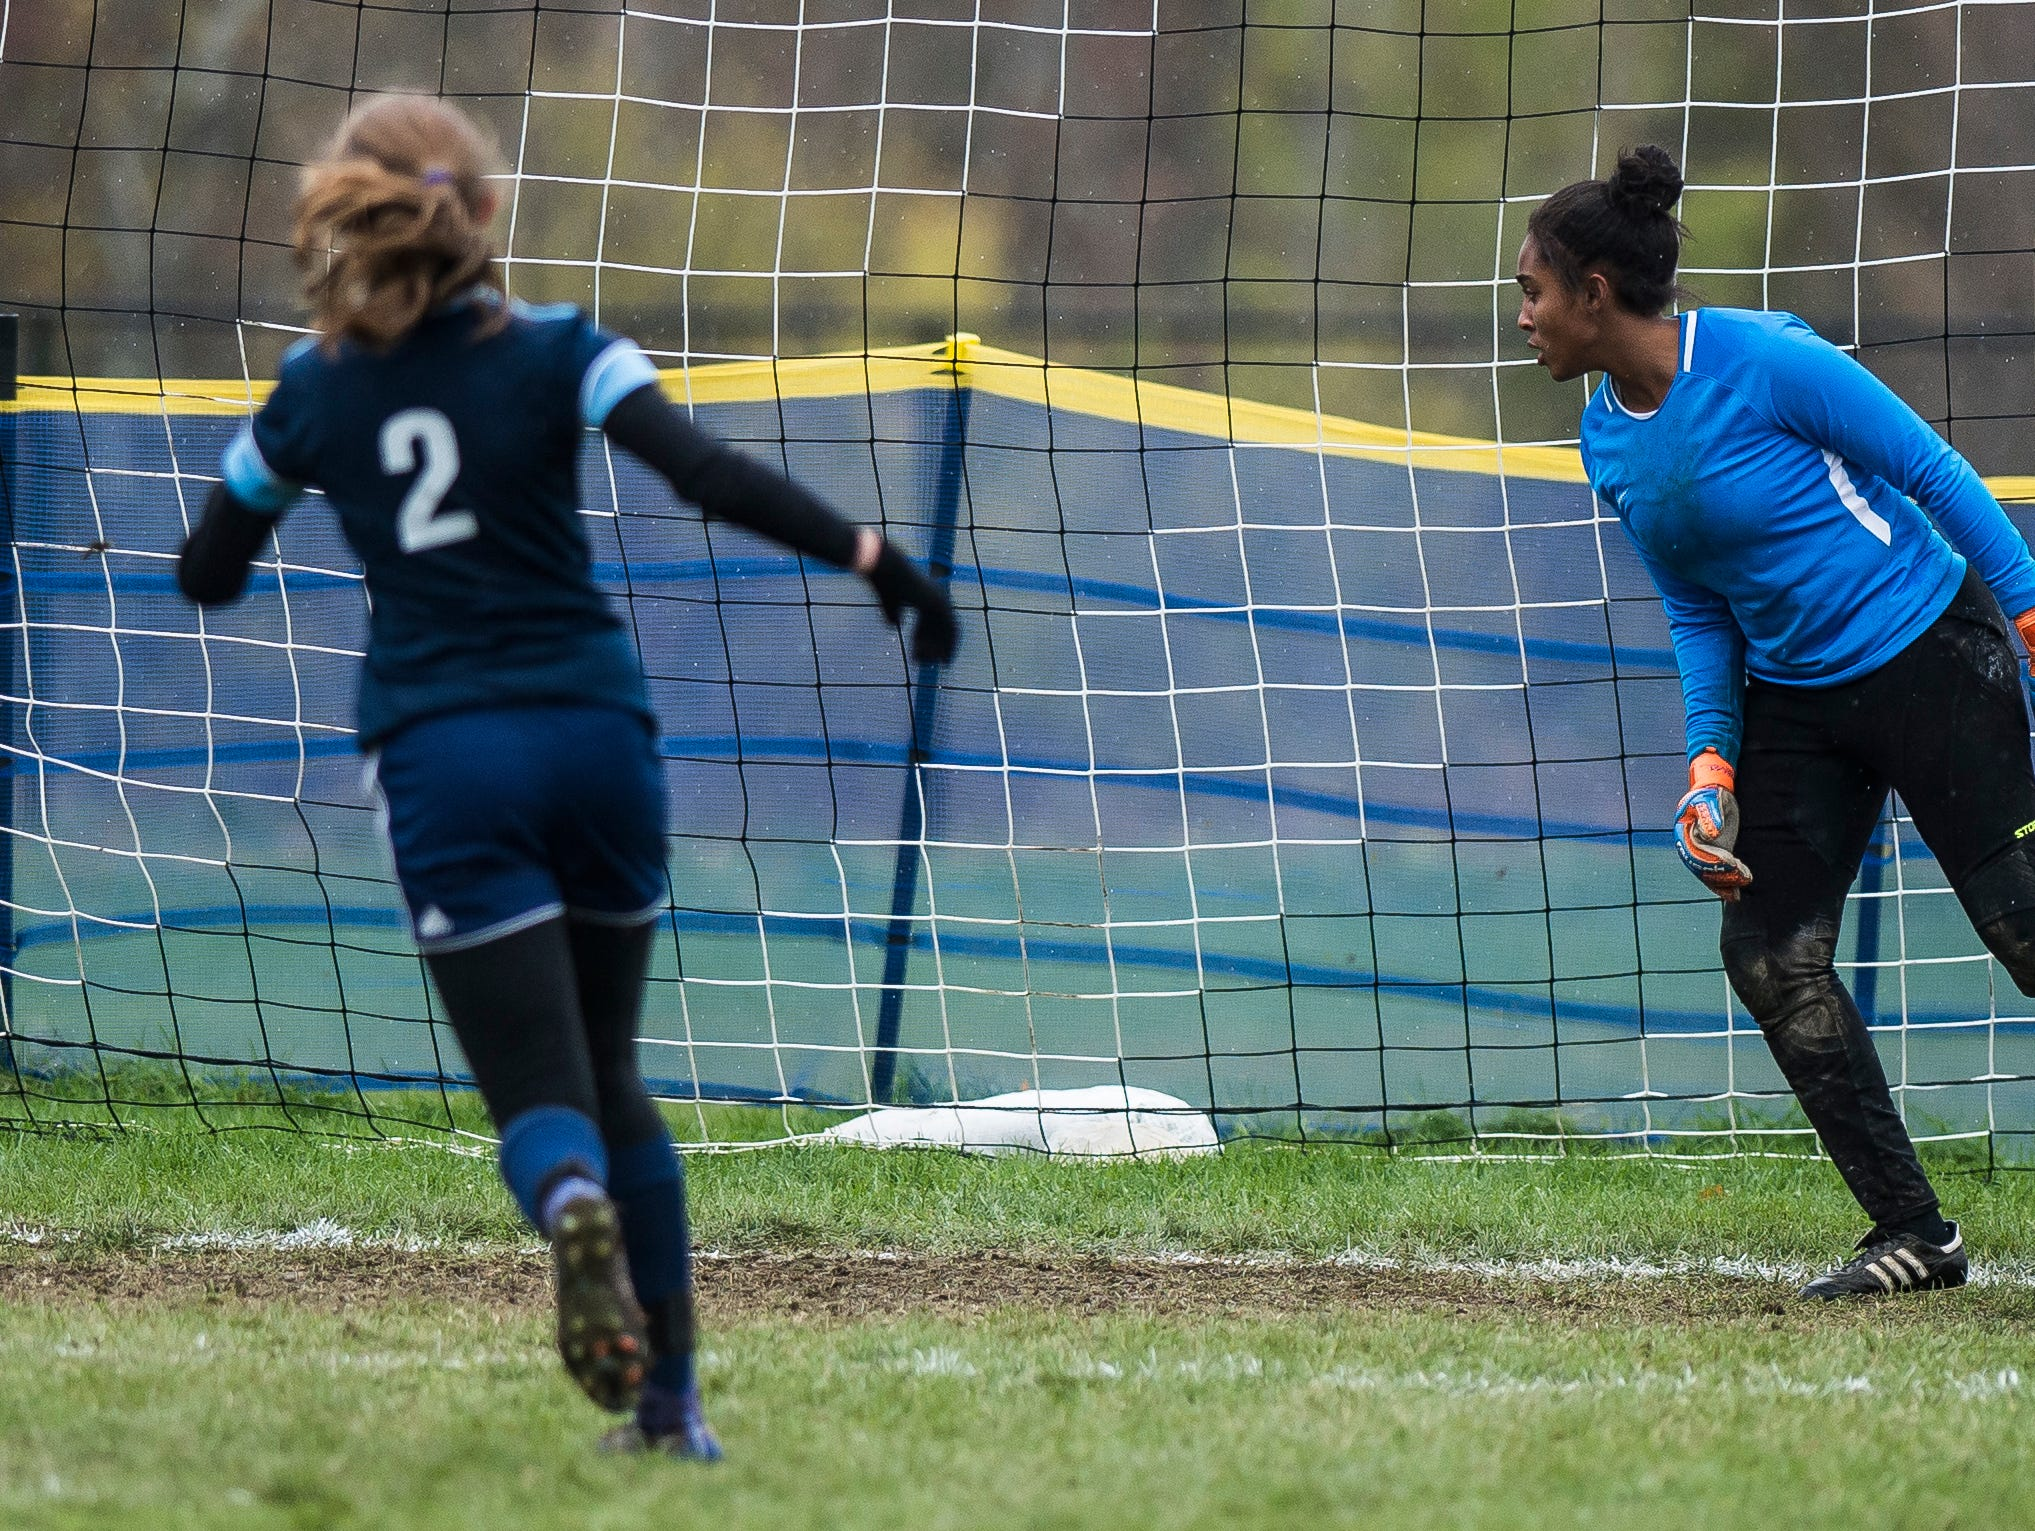 MMU #2 Sadie Gilbert-Barker scores on their third penalty kick attempt on Essex goalie Yasmine Nsame during their quarter-final game in Jericho on Saturday, Oct. 27, 2018, that went into double overtime and shootout. Essex took the penalty kick contest to win, 4-1.